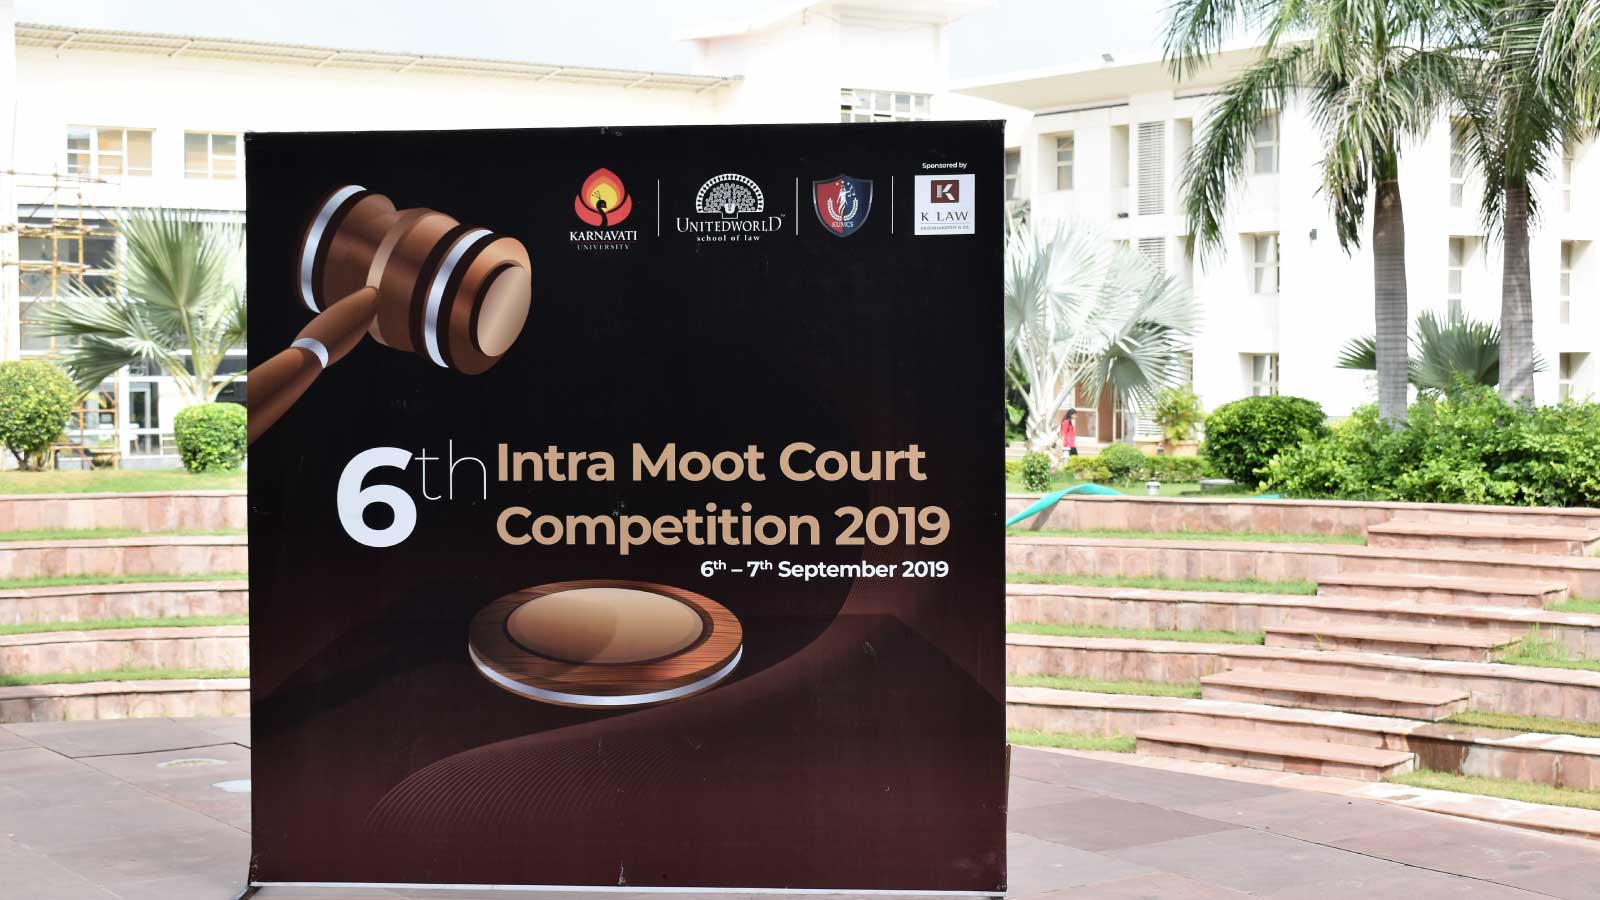 6th Intra Moot Competition Image